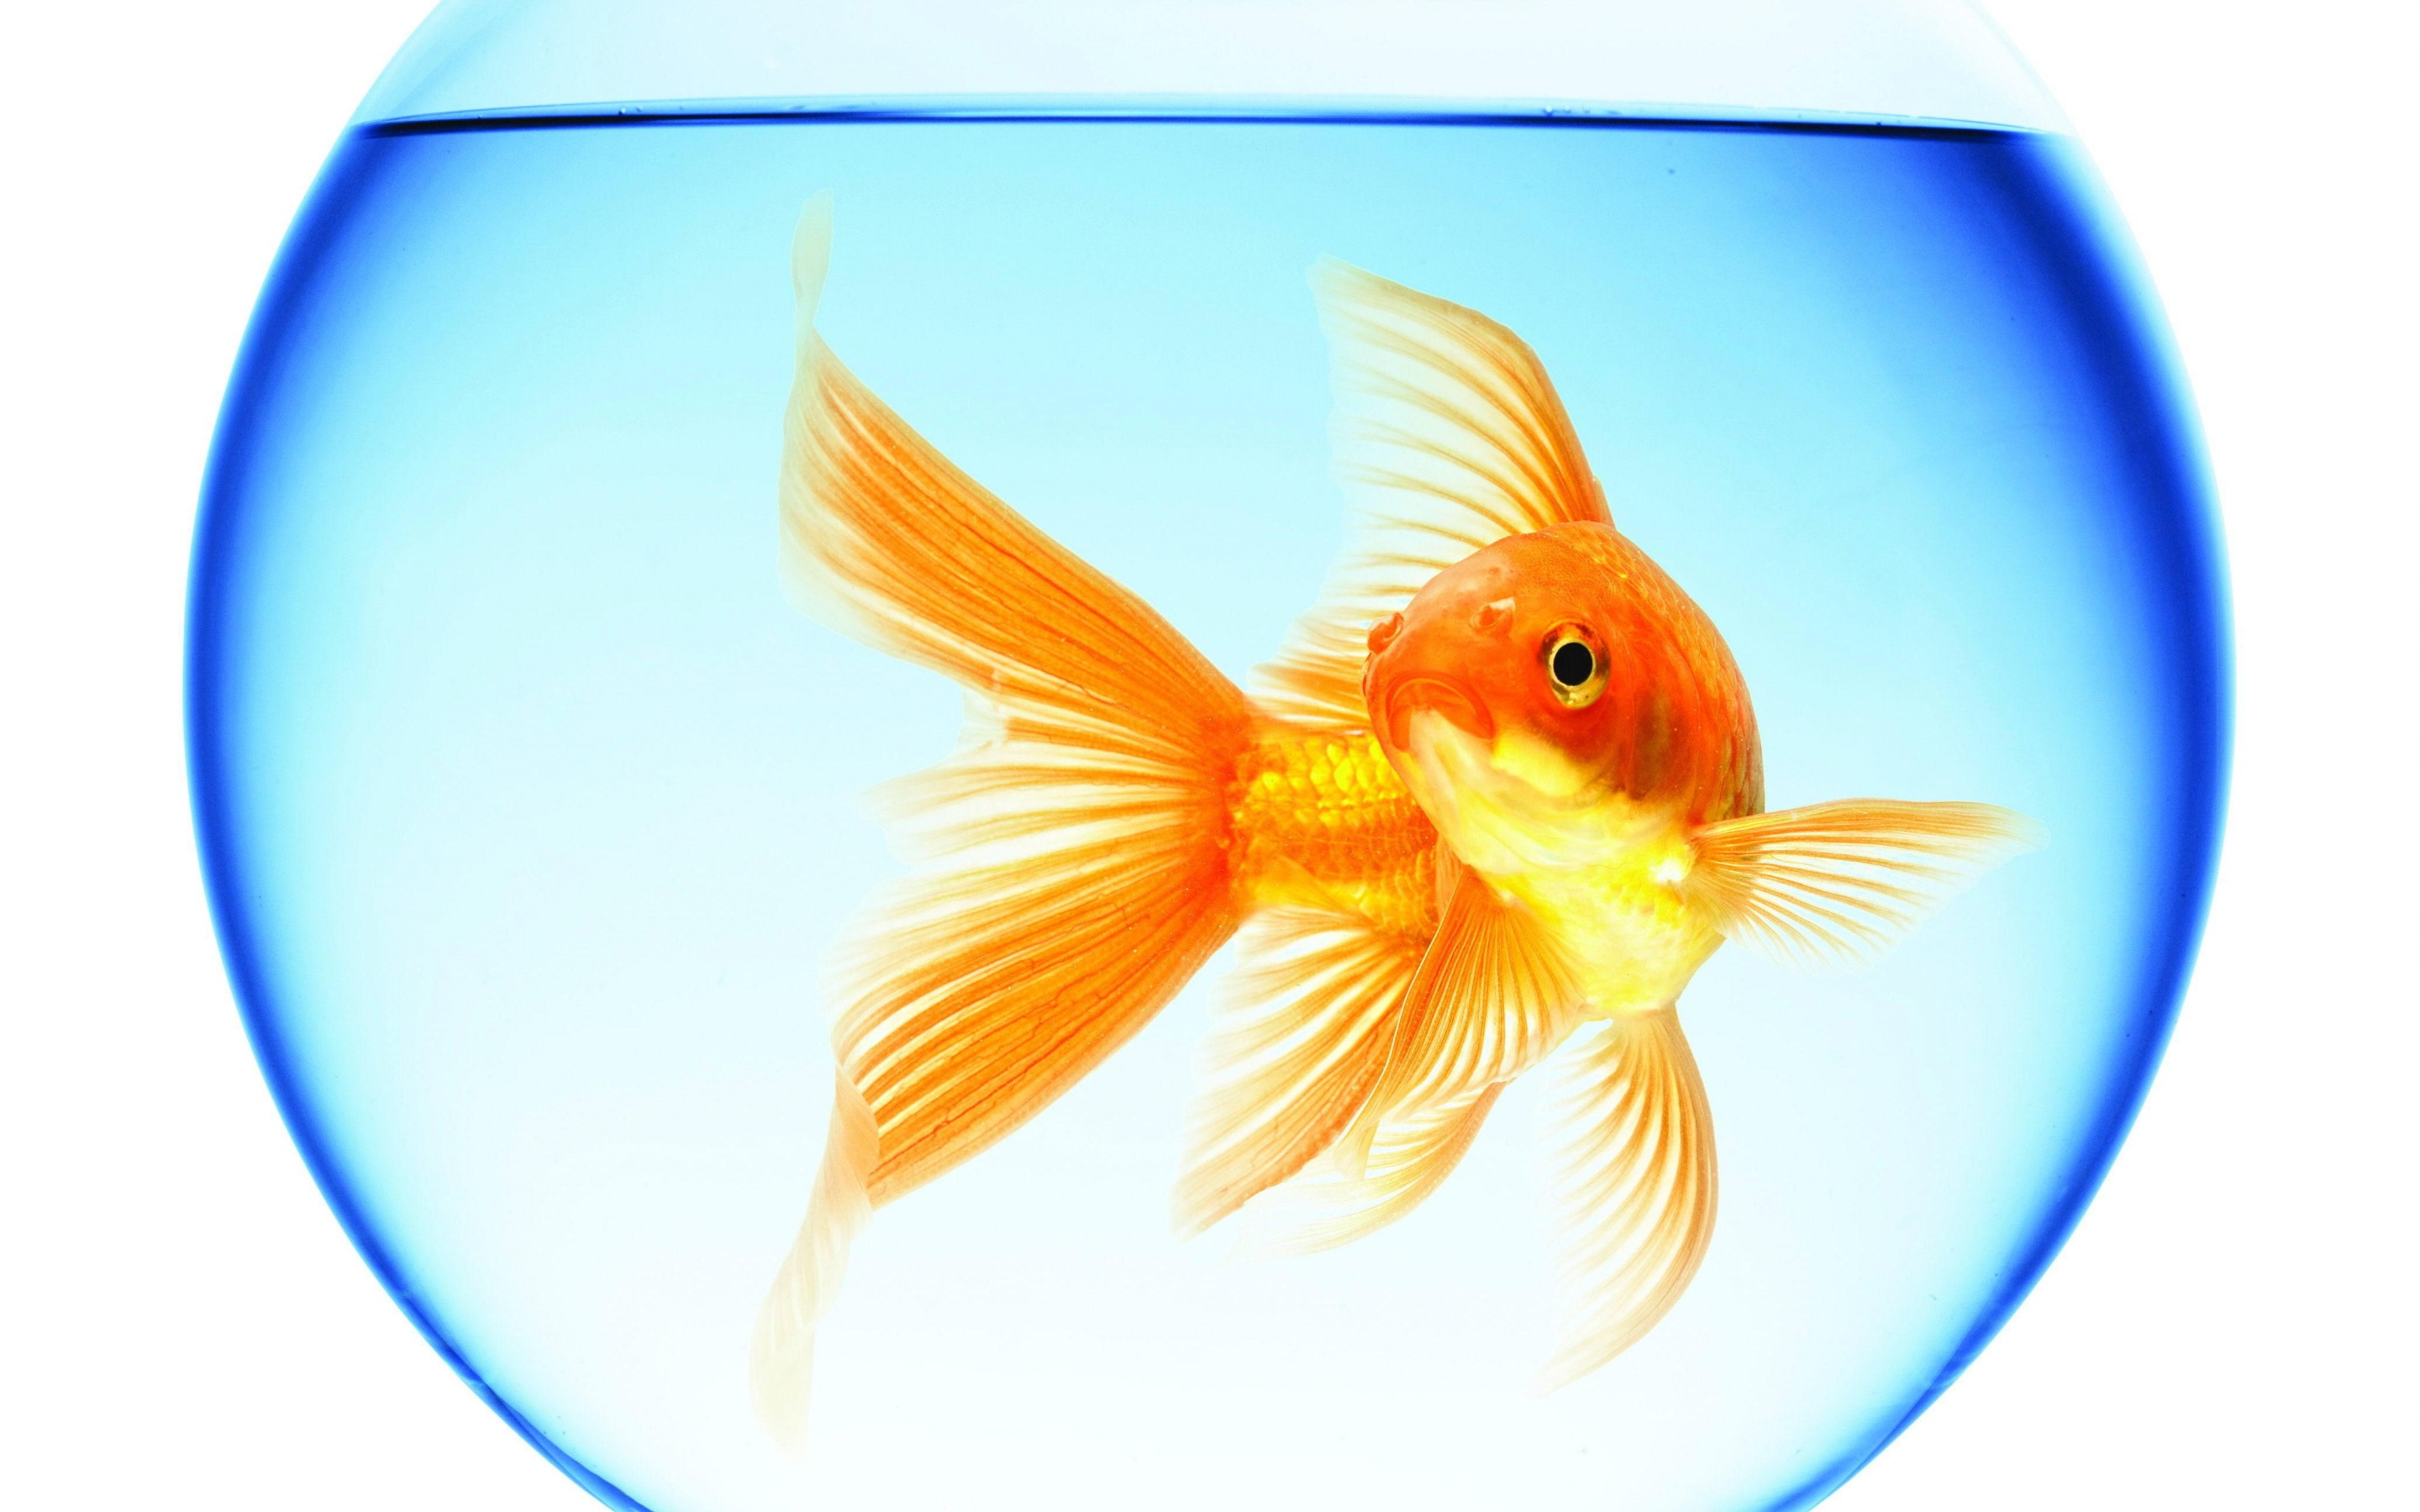 Goldfish swimming aquarium round water reflection white ...